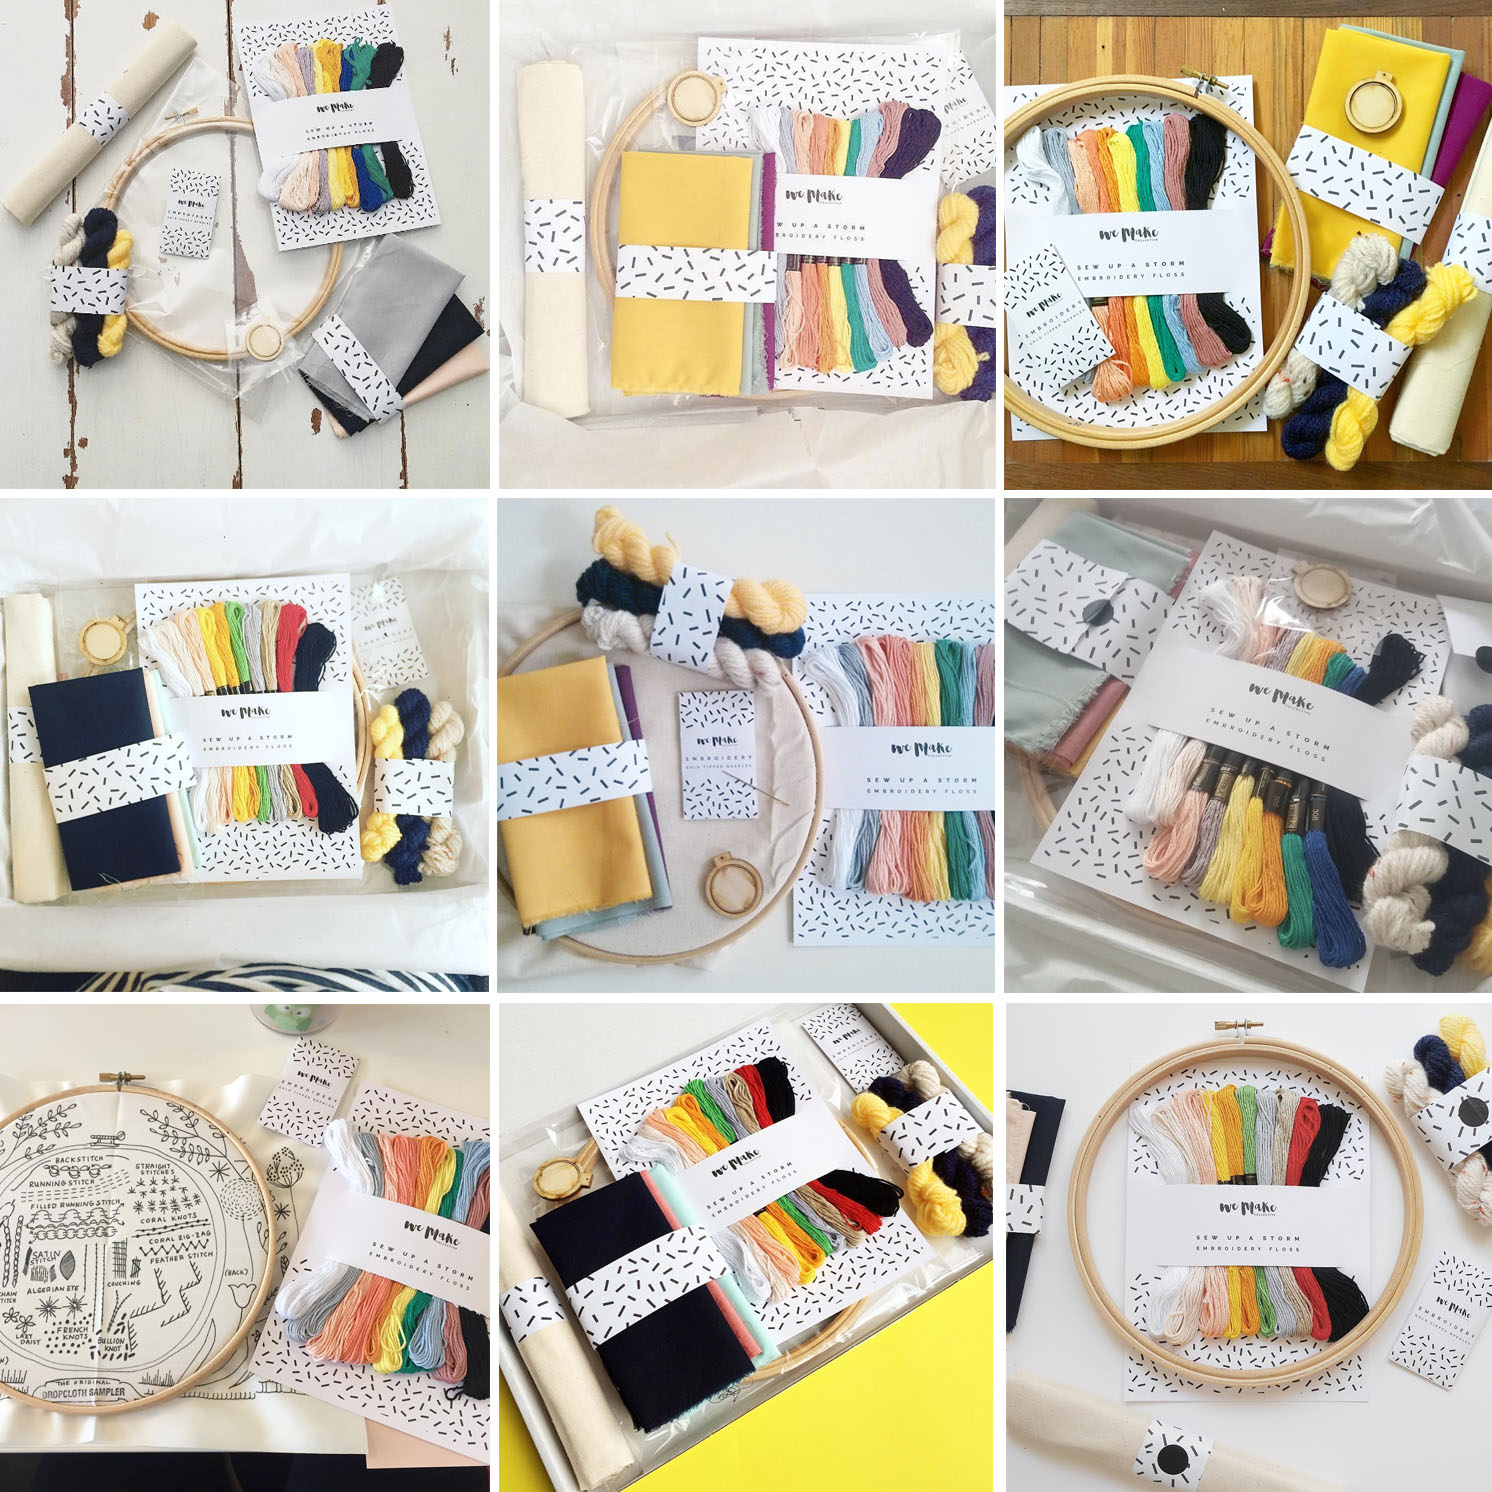 We Make Collective | Highlights from a Hashtag - Your Photos of our Embroidery Kit